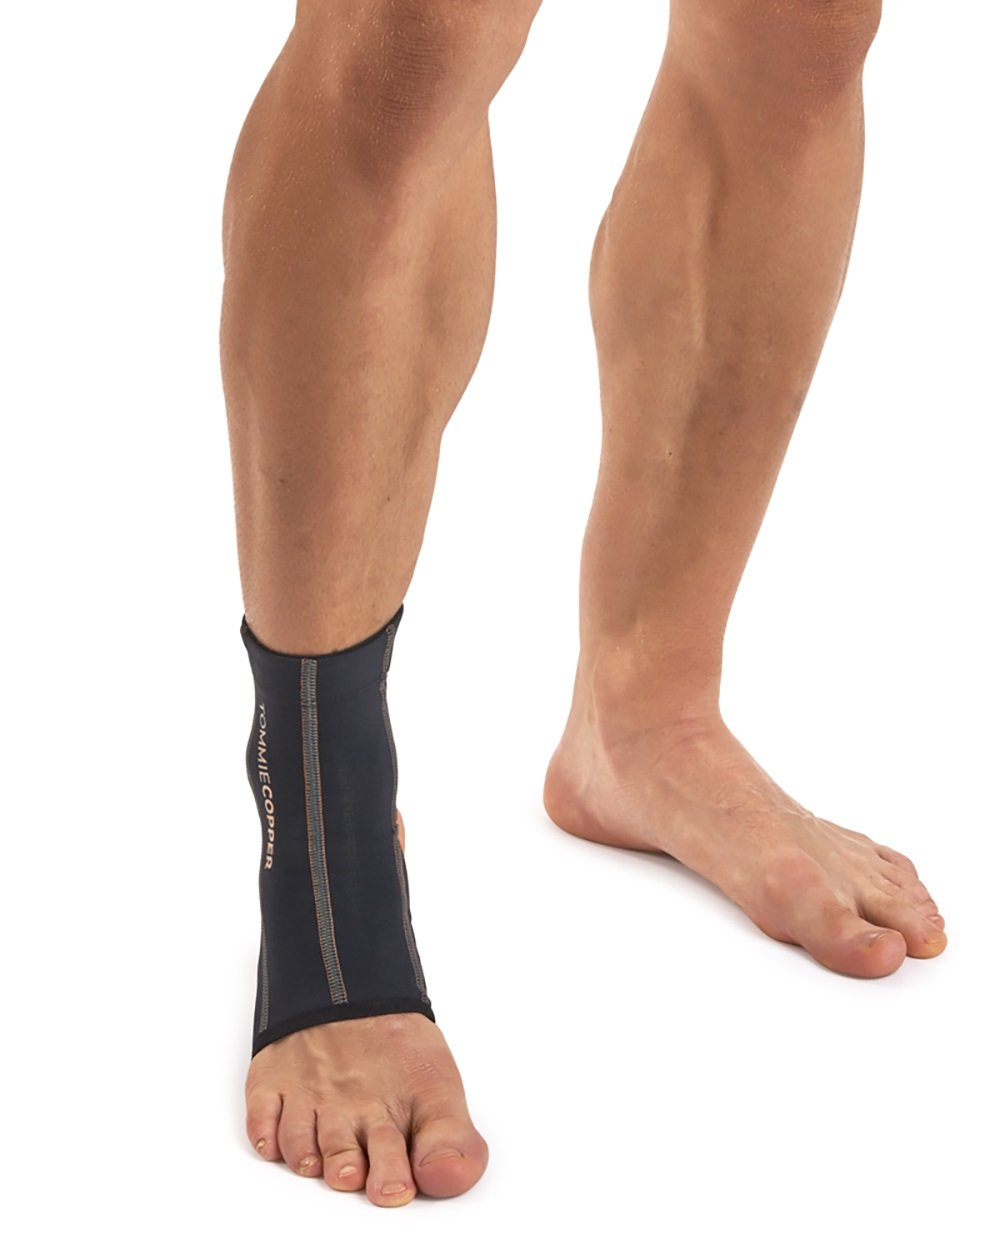 Tommie Copper Men's Performance Ankle Sleeves 2.0, X-Large, Black by Tommie Copper (Image #3)